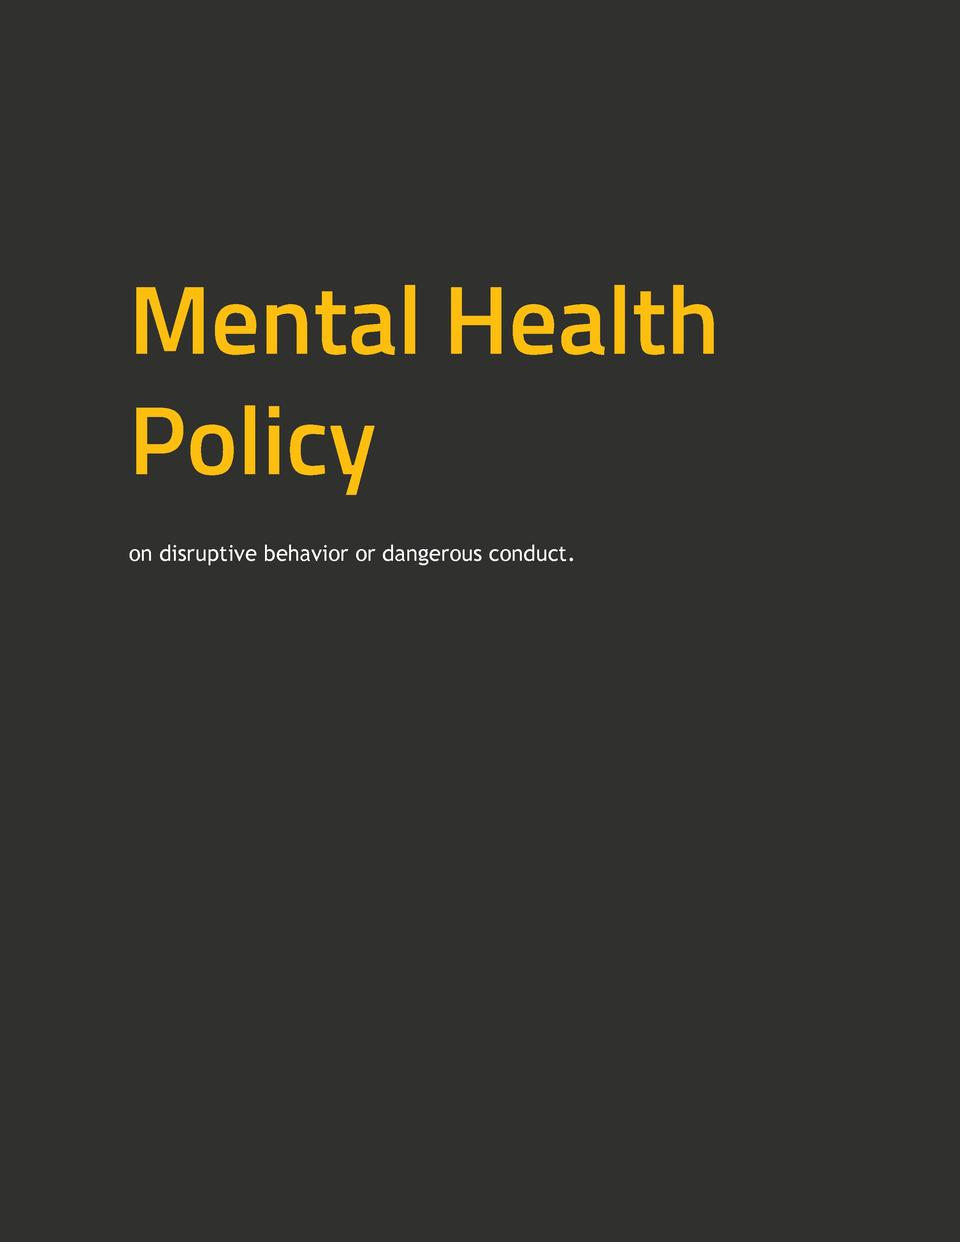 Mental Health Policy on disruptive behavior or dangerous conduct.